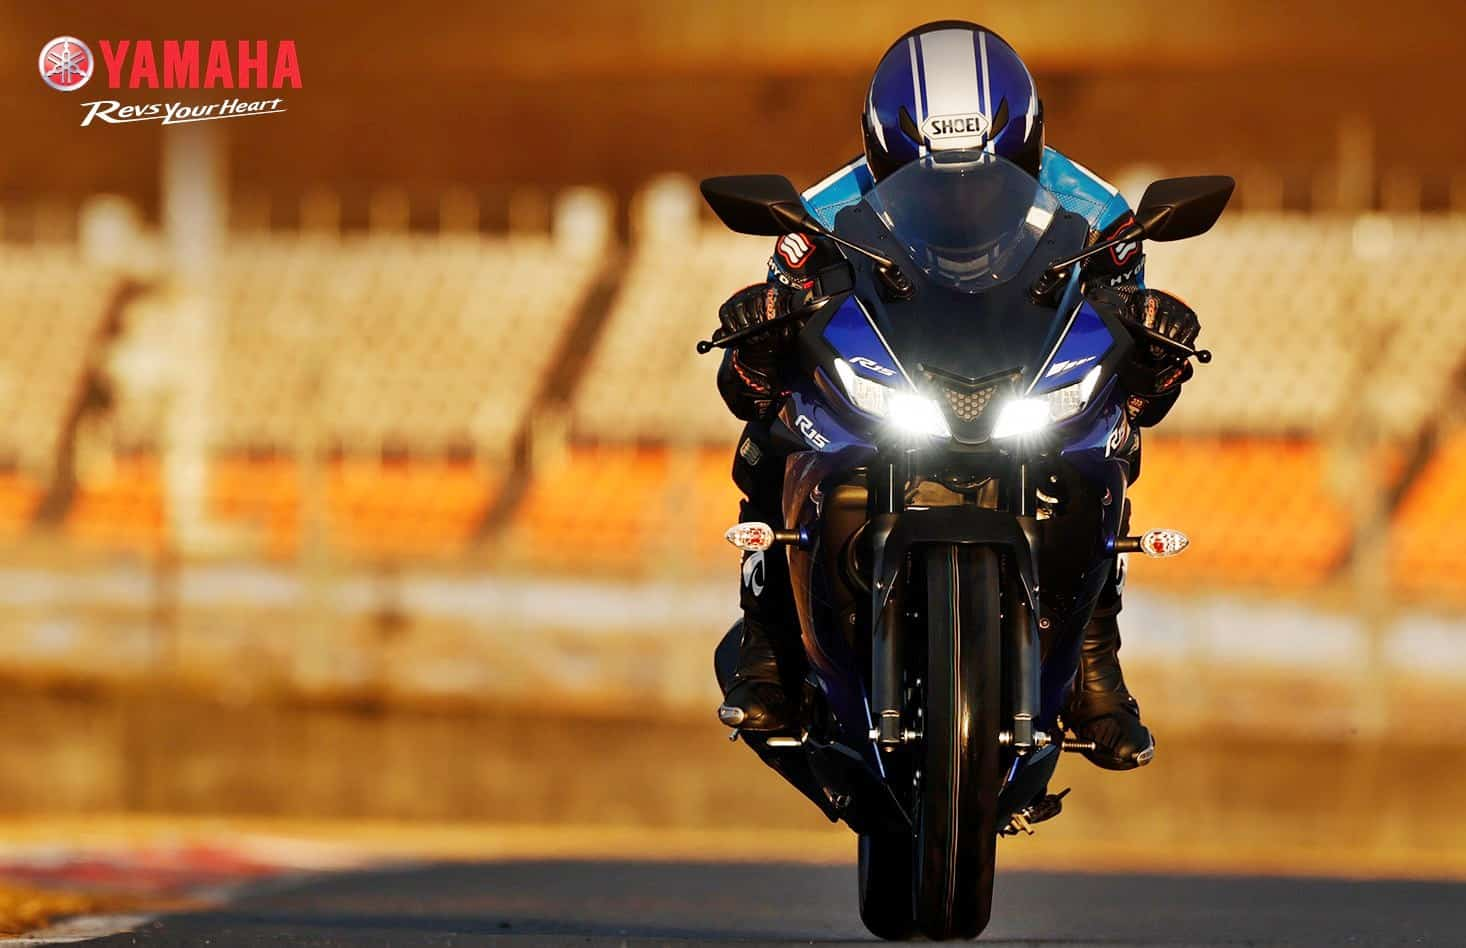 All you need to know about the new Yamaha R15 V3 2018.